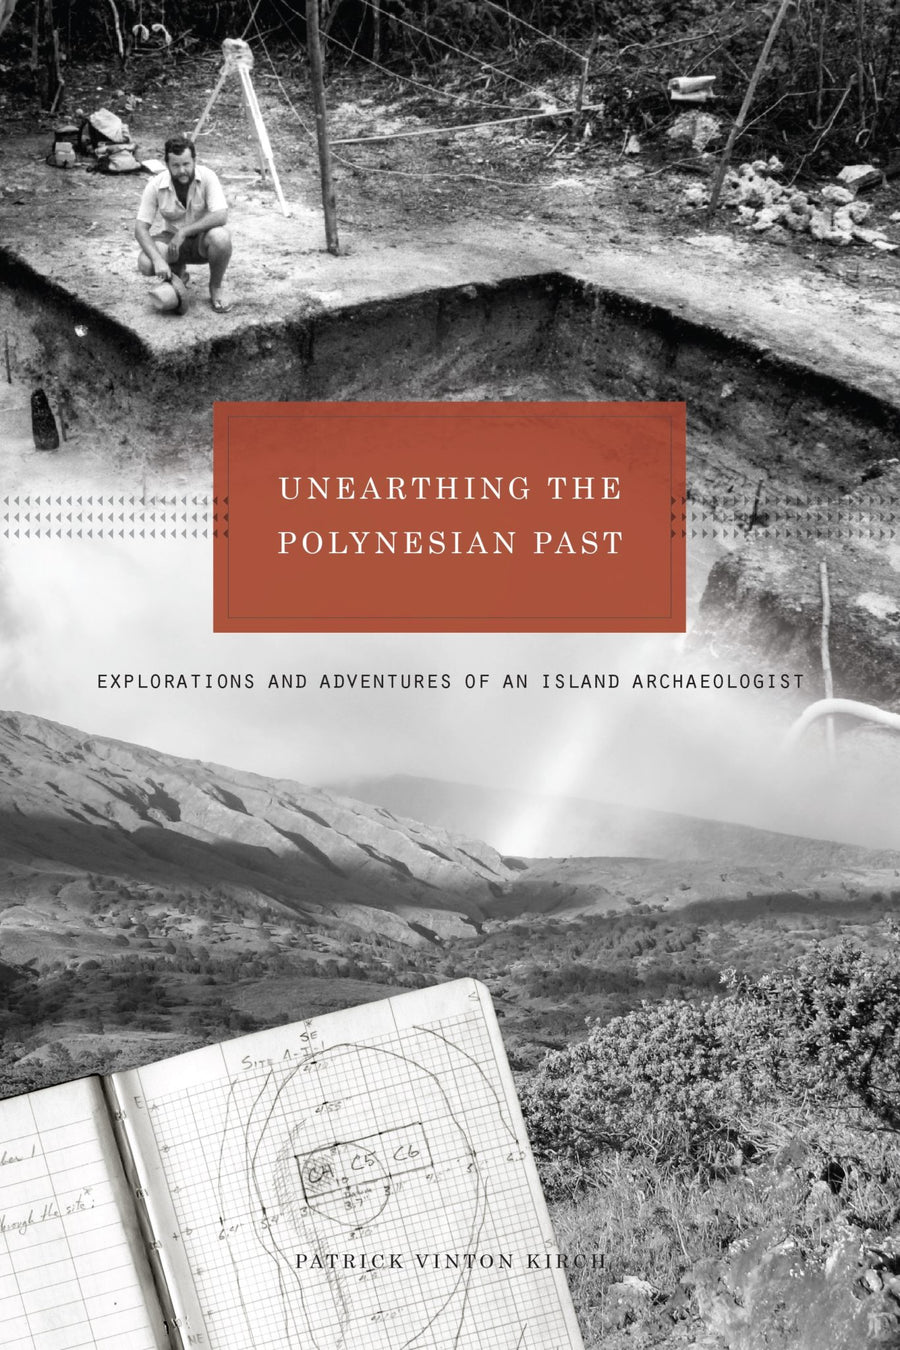 Unearthing the Polynesian Past: Explorations and Adventures of an Island Archaeologist